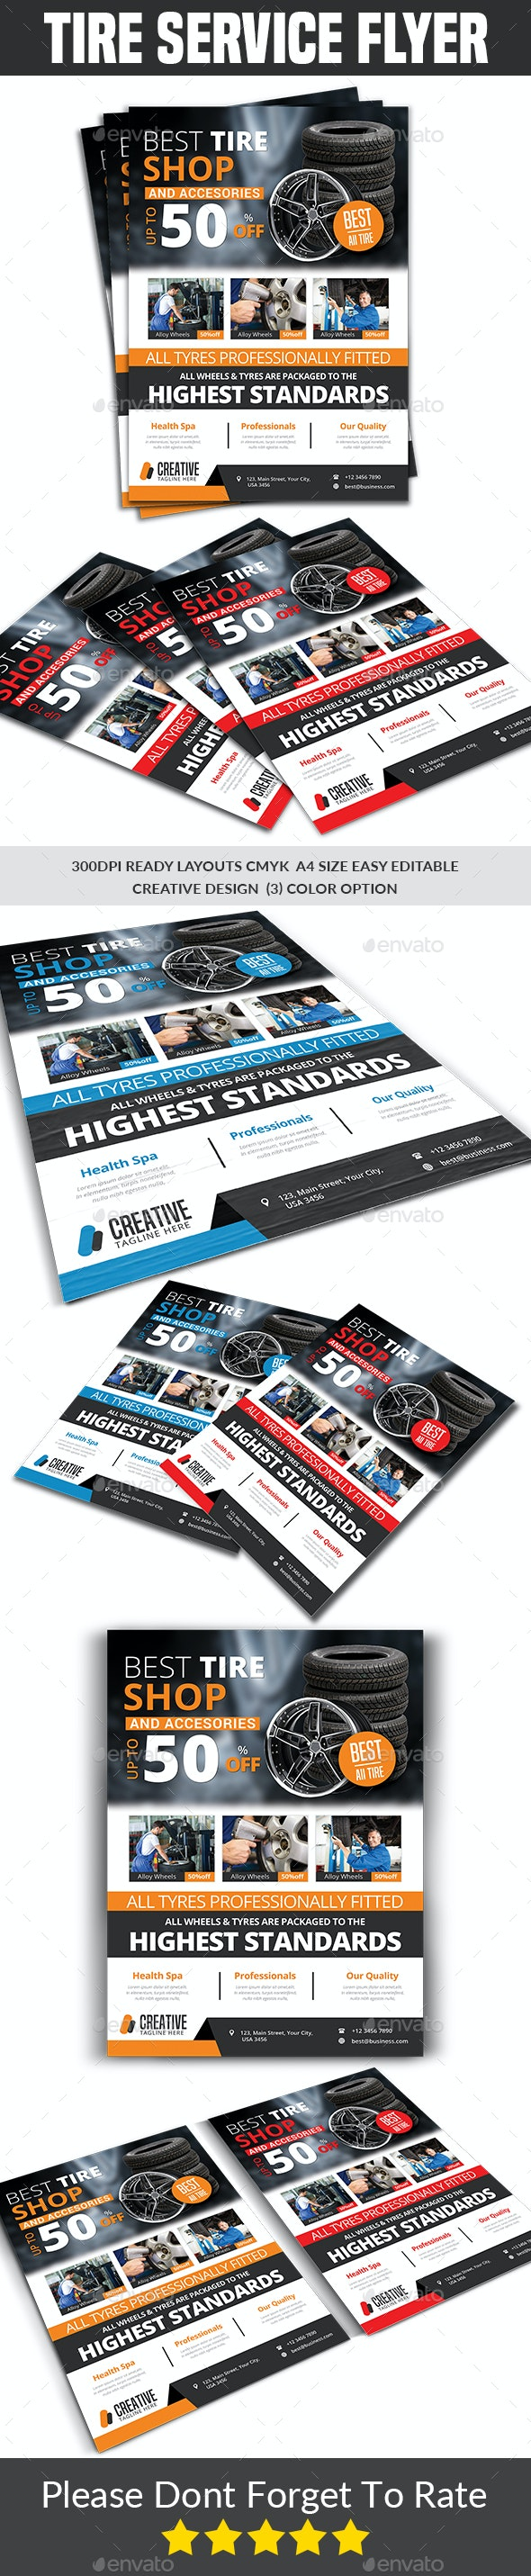 Tires Services Flyer Template - Commerce Flyers